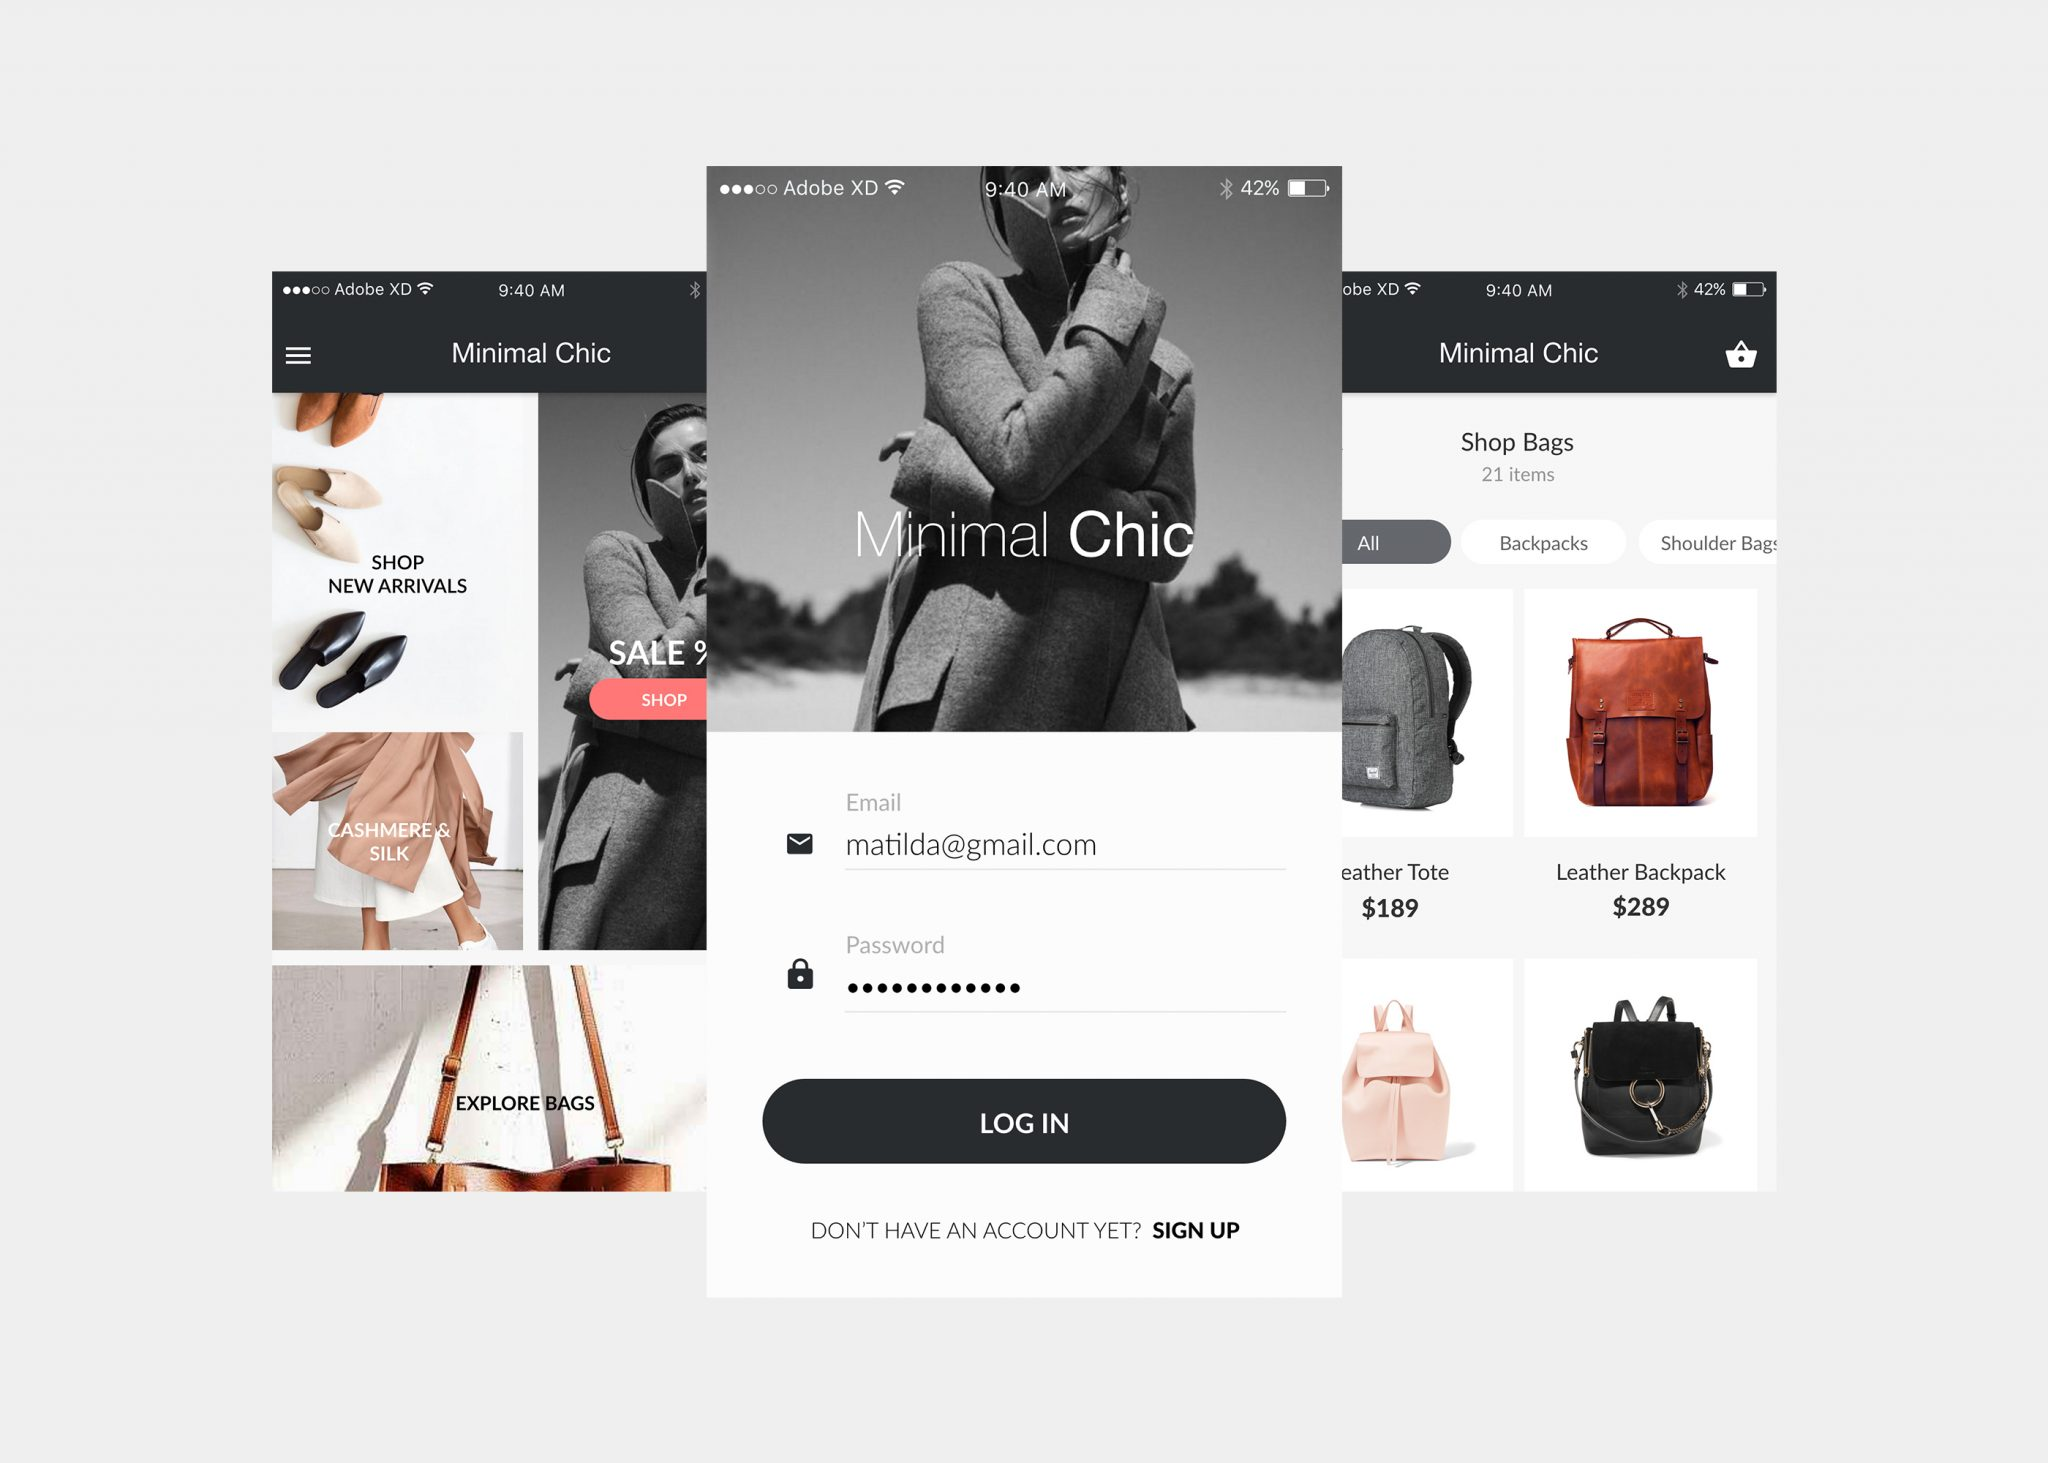 Minimal Chic E-commerce iOS UI Kit for iPhone6,7 Adobe XD